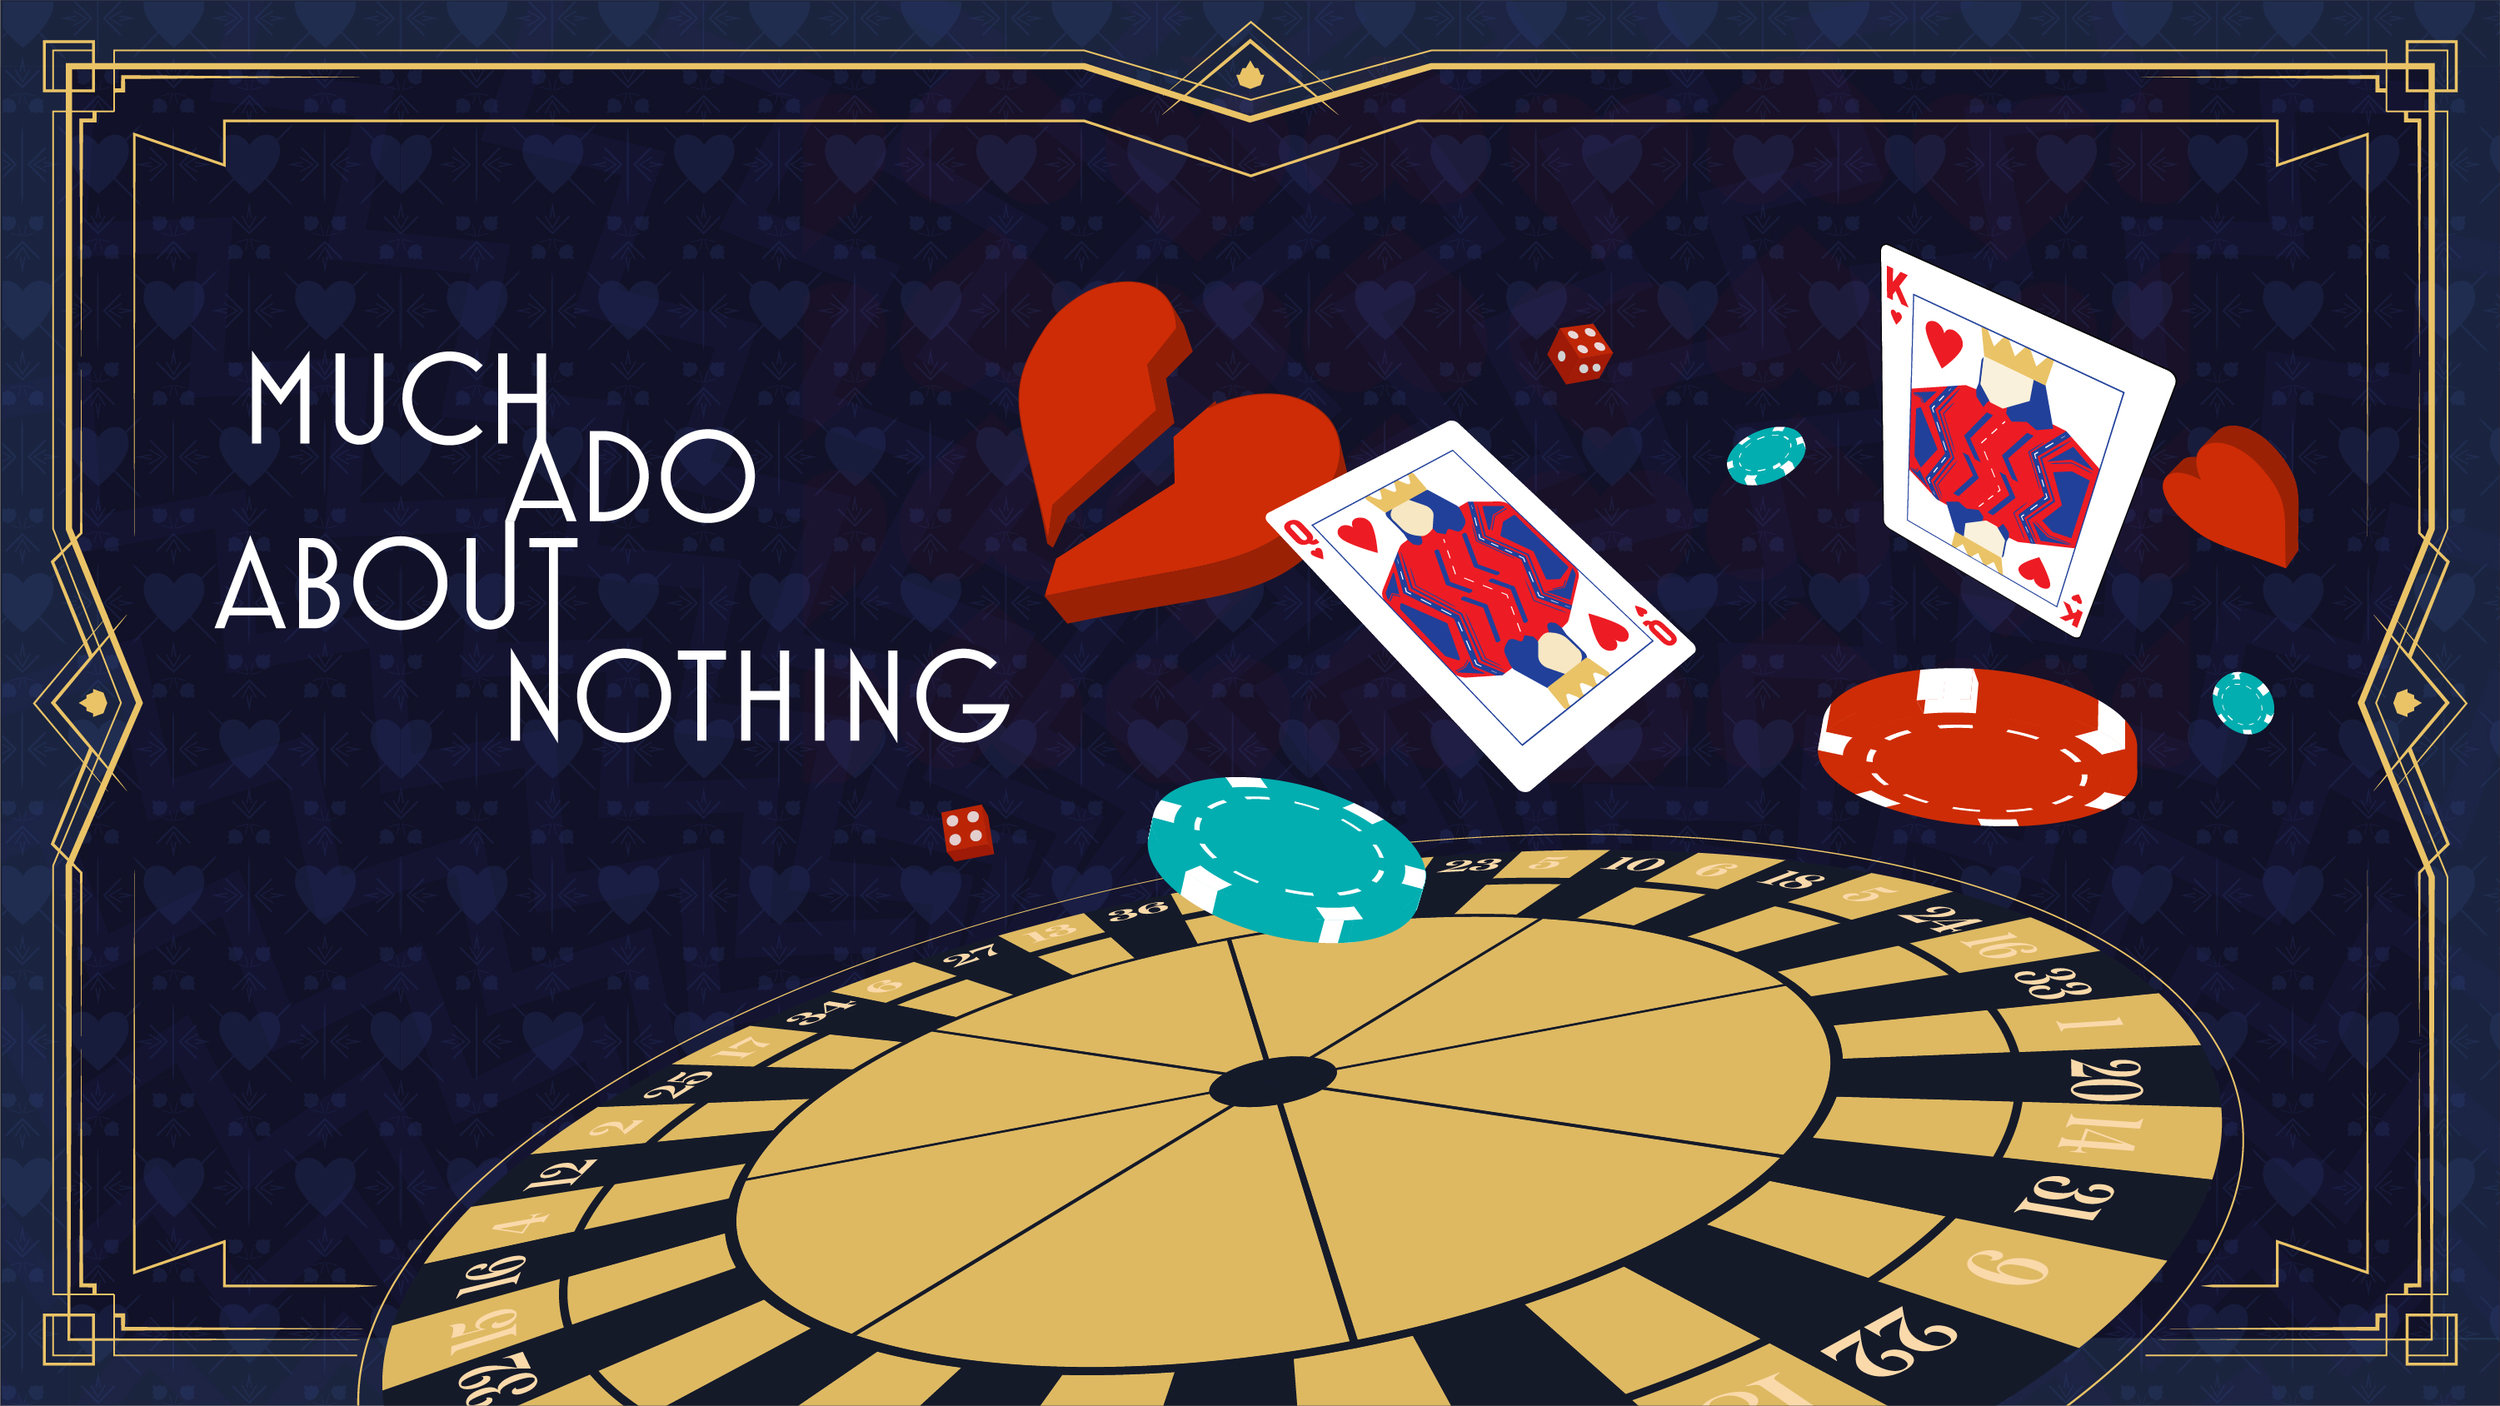 AWP: Much Ado About Nothing - Designer: Alex Cerutti